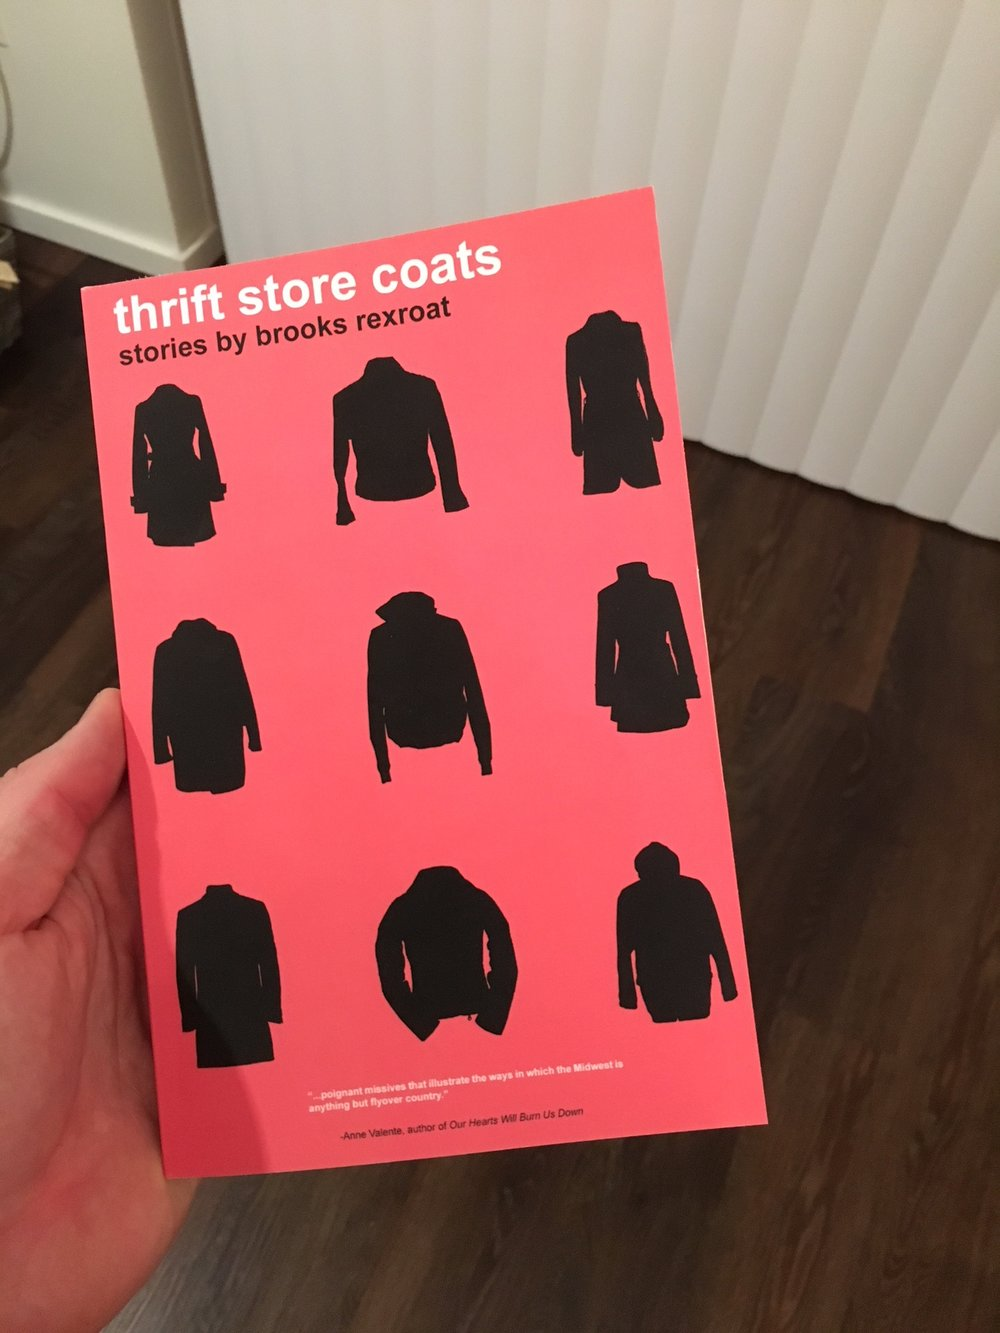 Physical copies of Thrift Store Coats have arrived at the Seattle offices of Orson's Publishing.